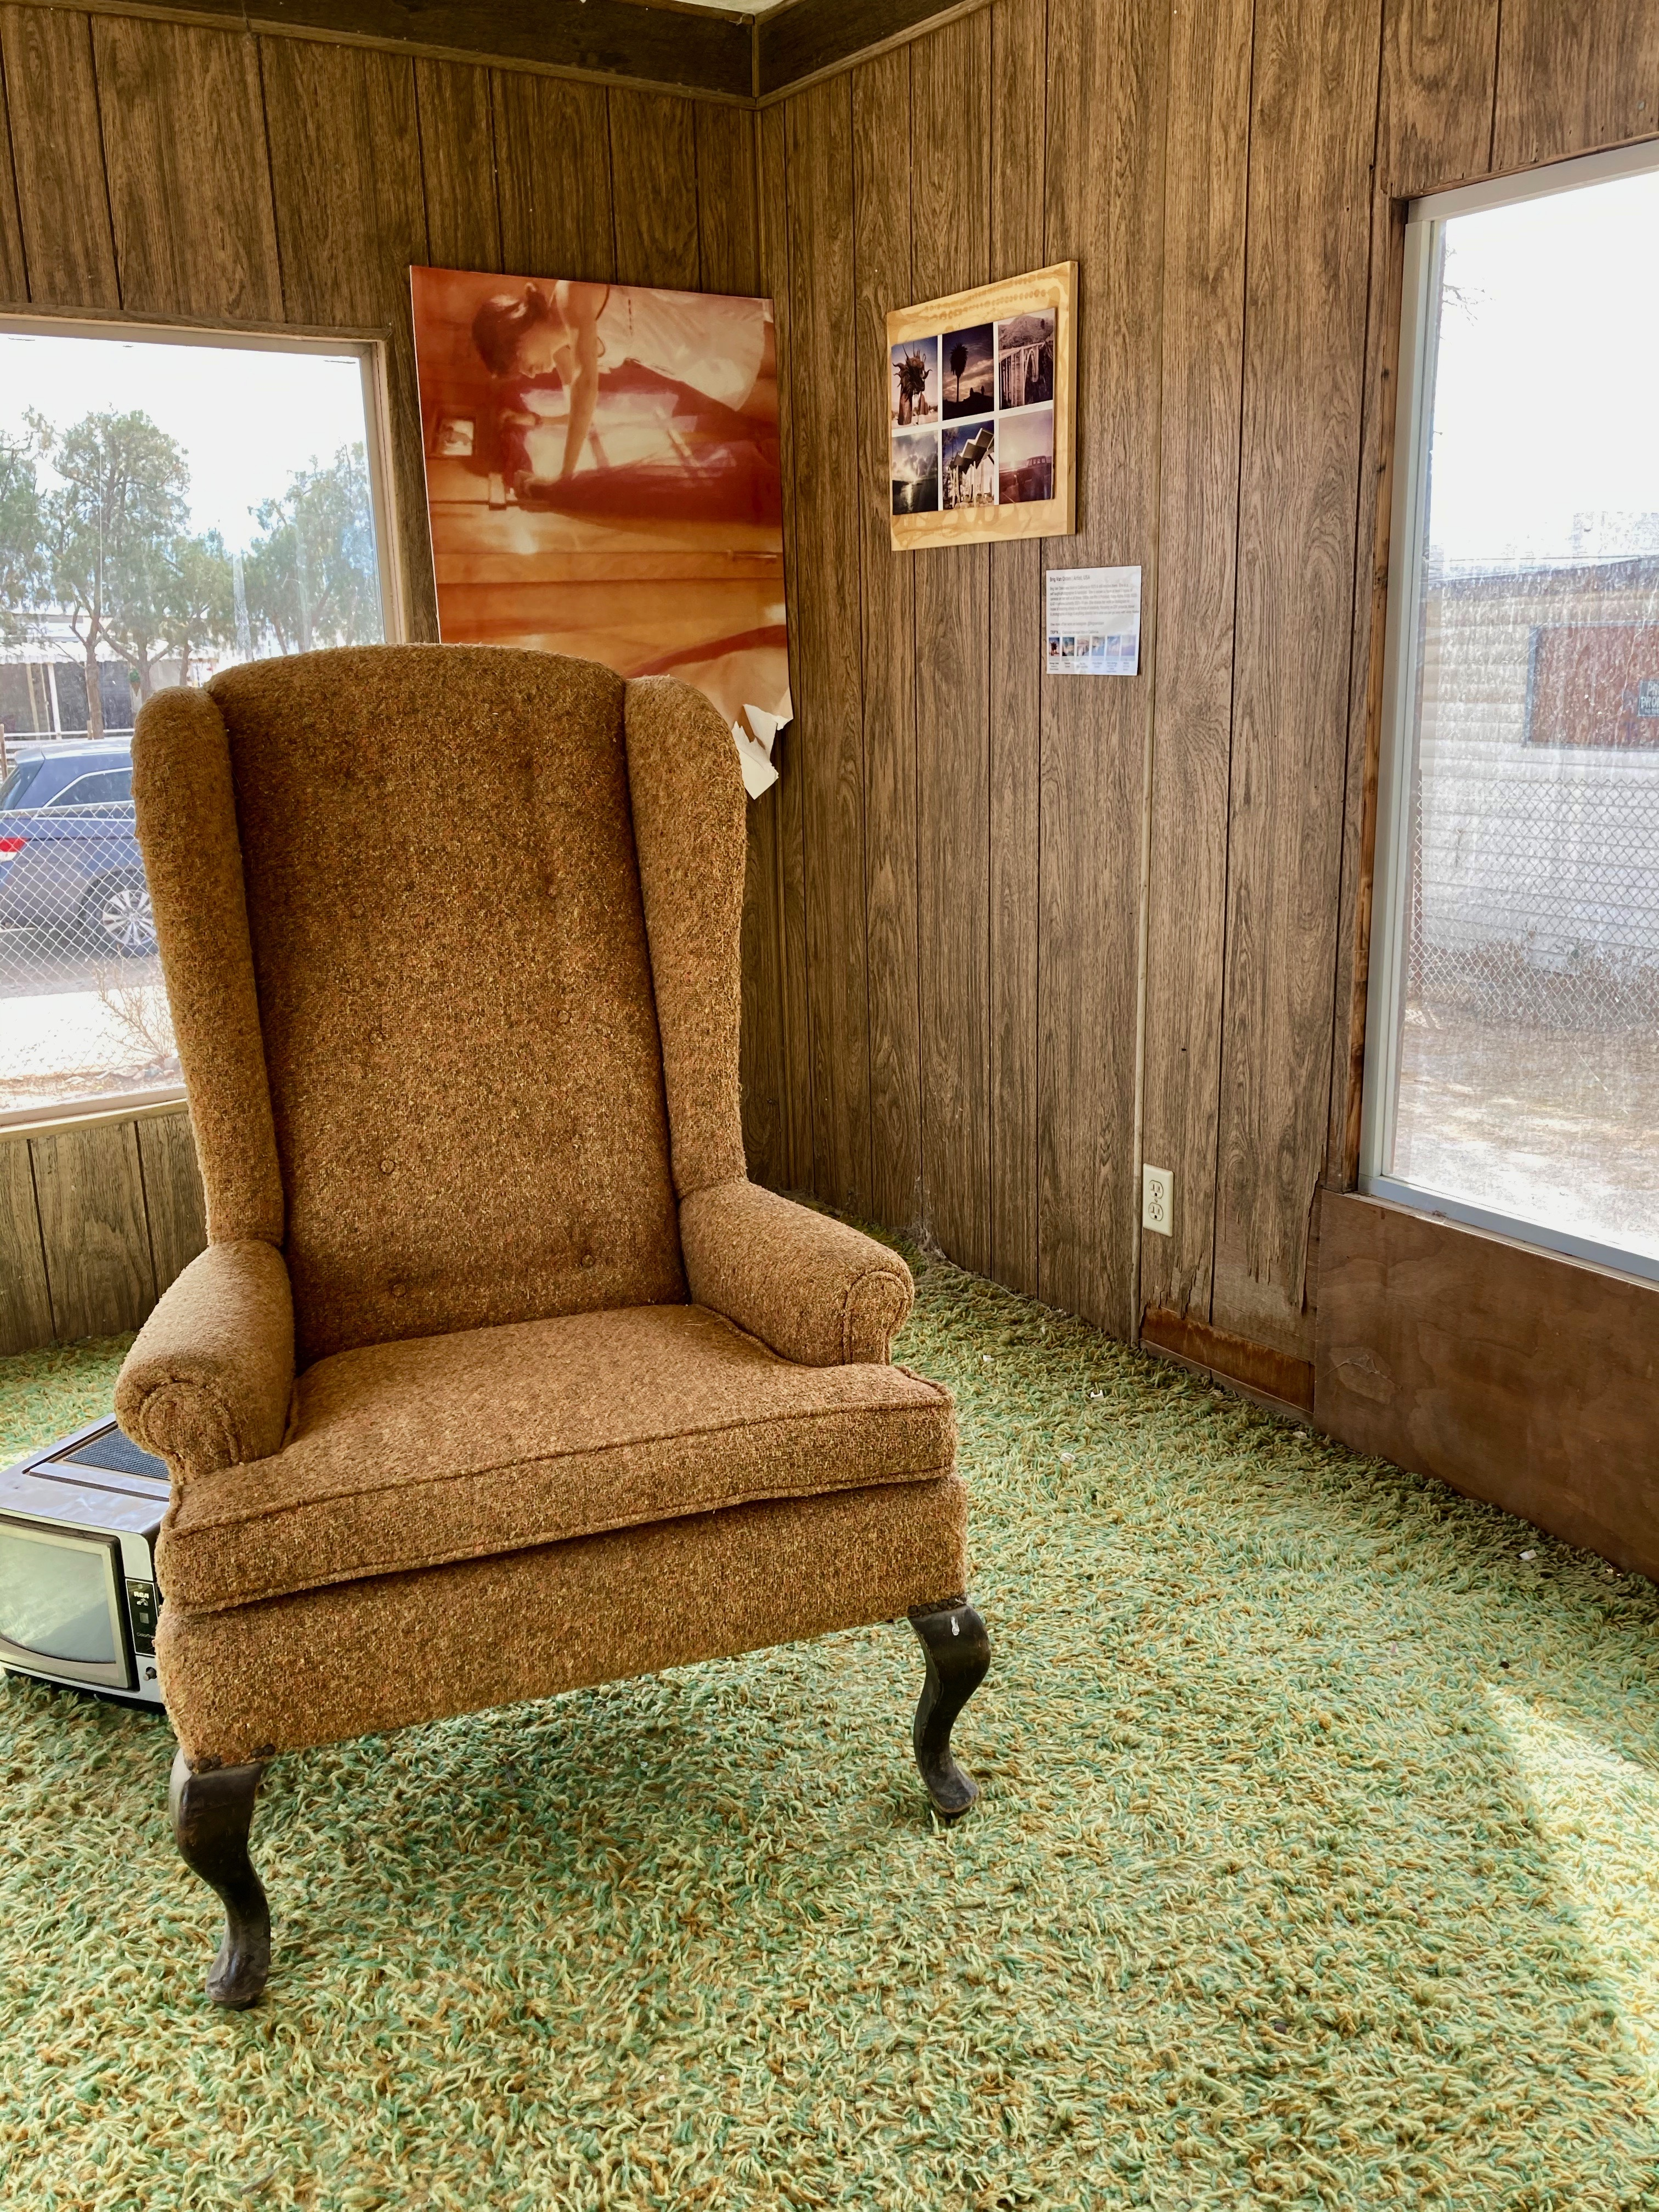 domestic interior of old trailer with armchair, shag rug, and photographs on wood panelled walls